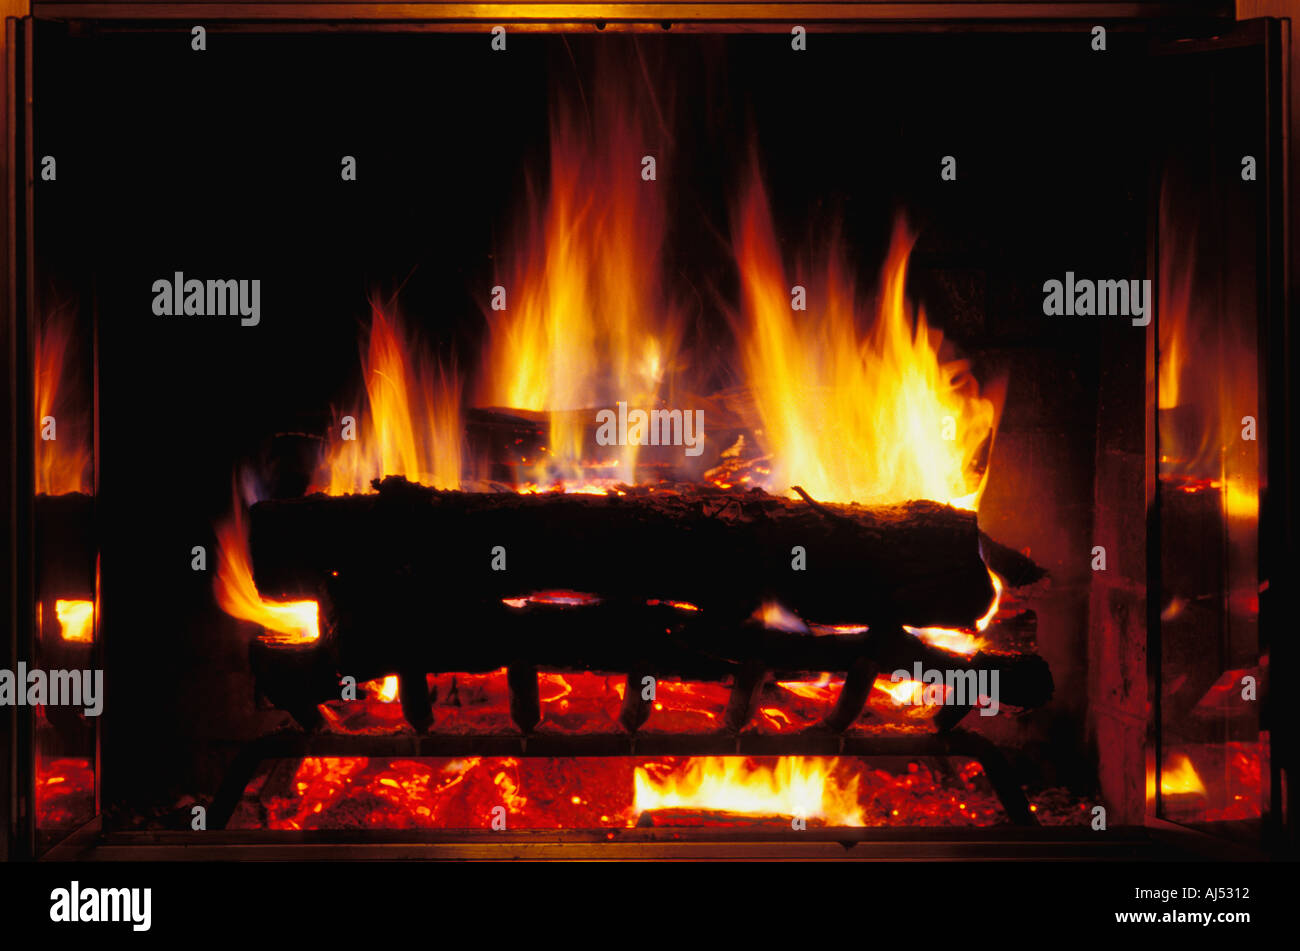 Cozy warm fire in a fireplace Stock Photo